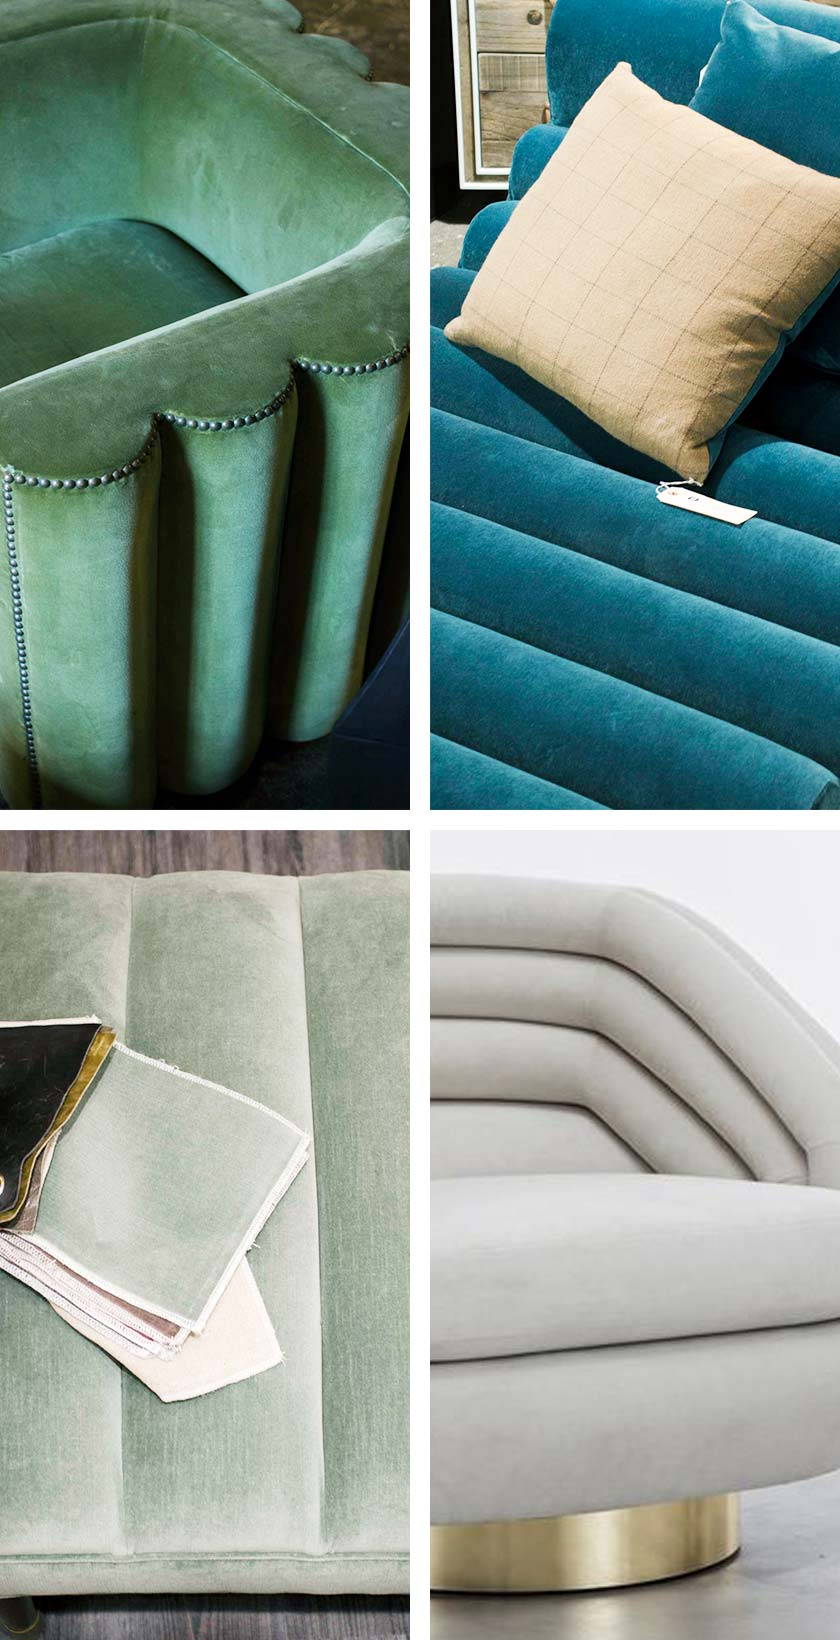 Channel tufting decor trend from AmericasMart on Thou Swell @thouswellblog